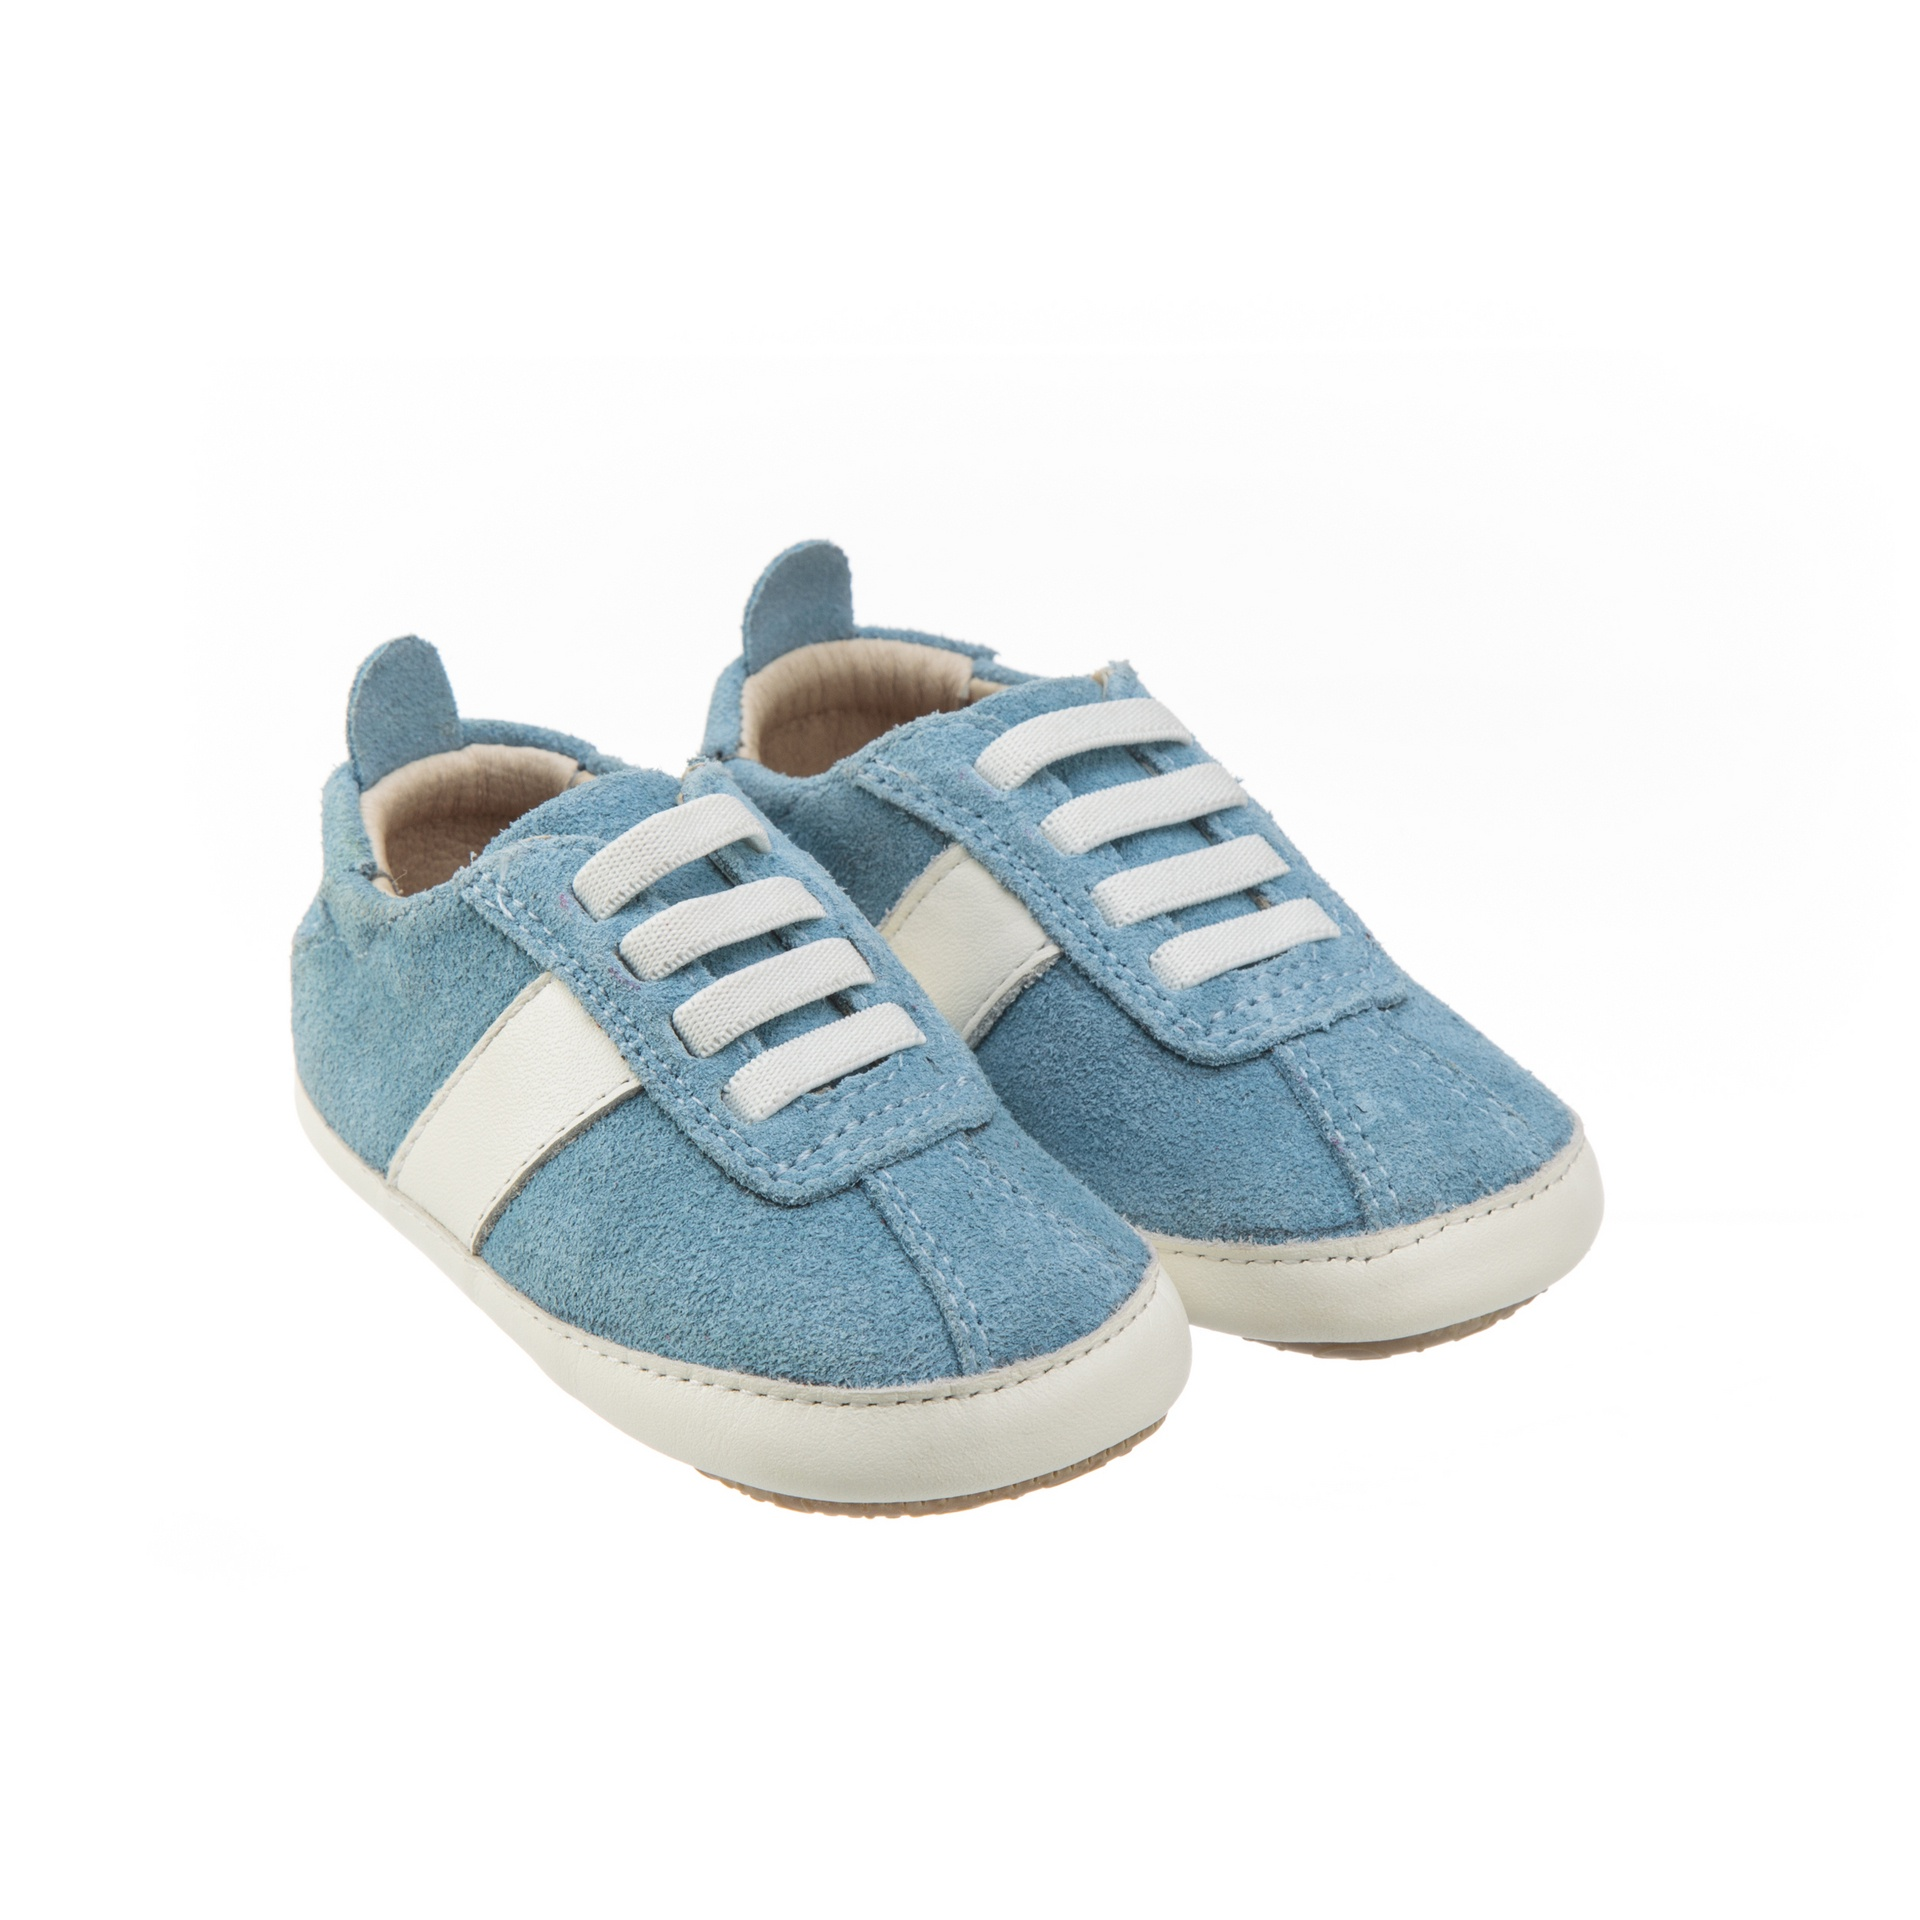 Old Soles Vintage Bambini Blue Sky Suede White